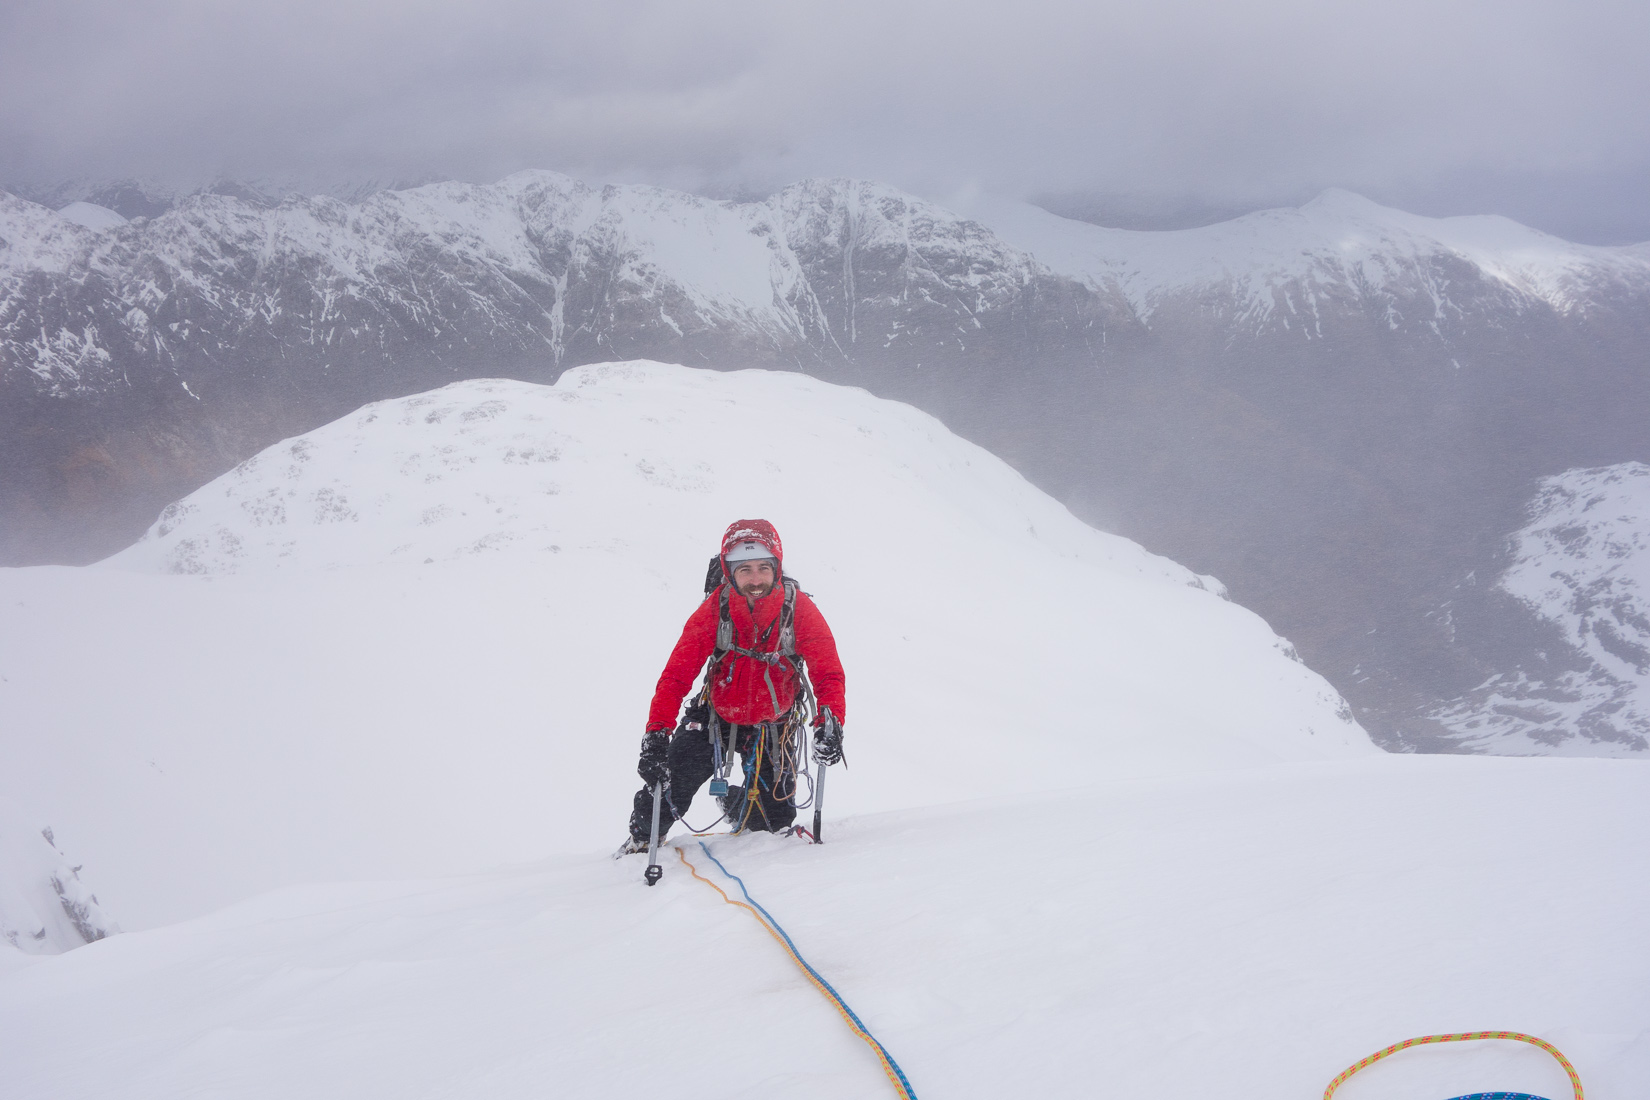 At the top of Raeburn's Route